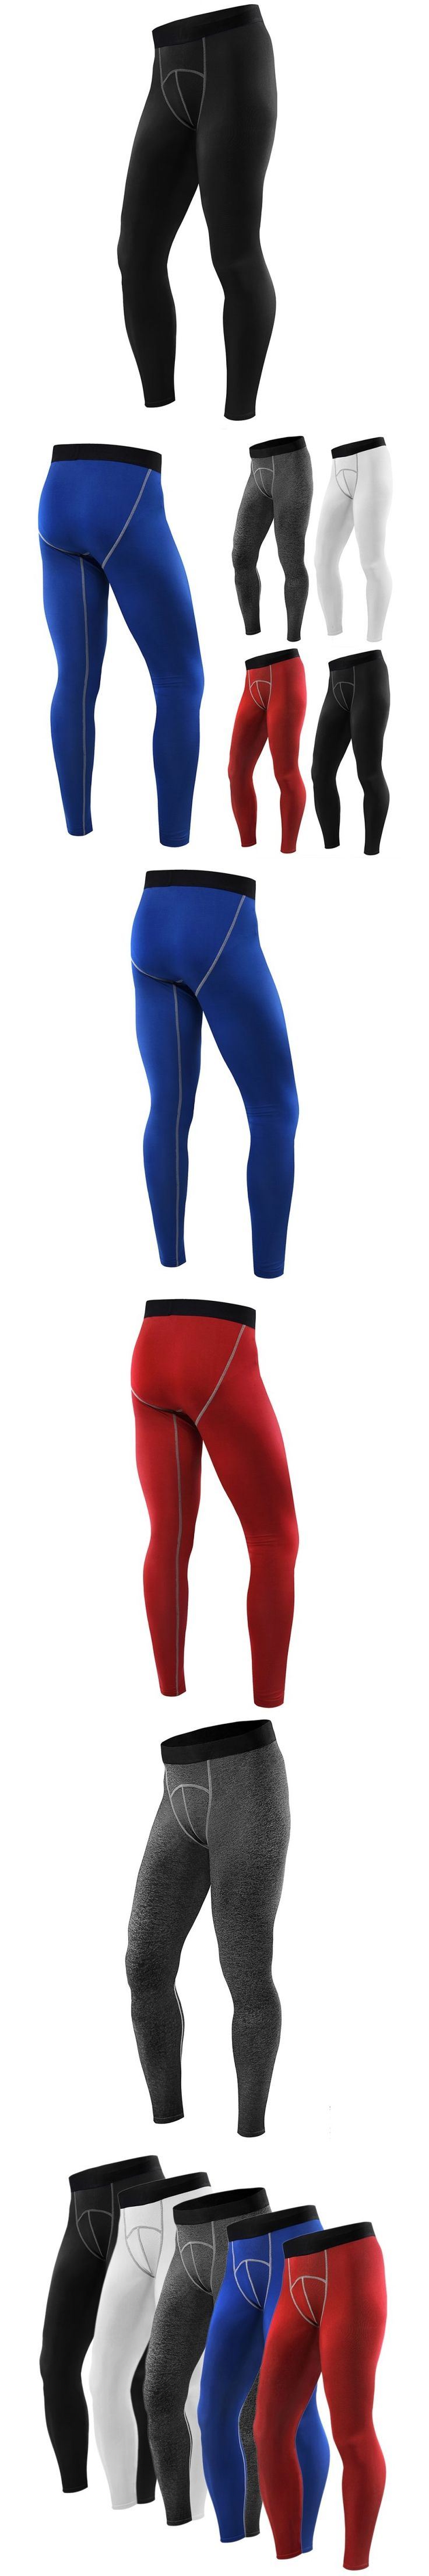 Apparel Male Compression Tights Pants Trousers Sweatpant Quick-drying Men Compression Base Layer Pants Leggings Fitness Trousers